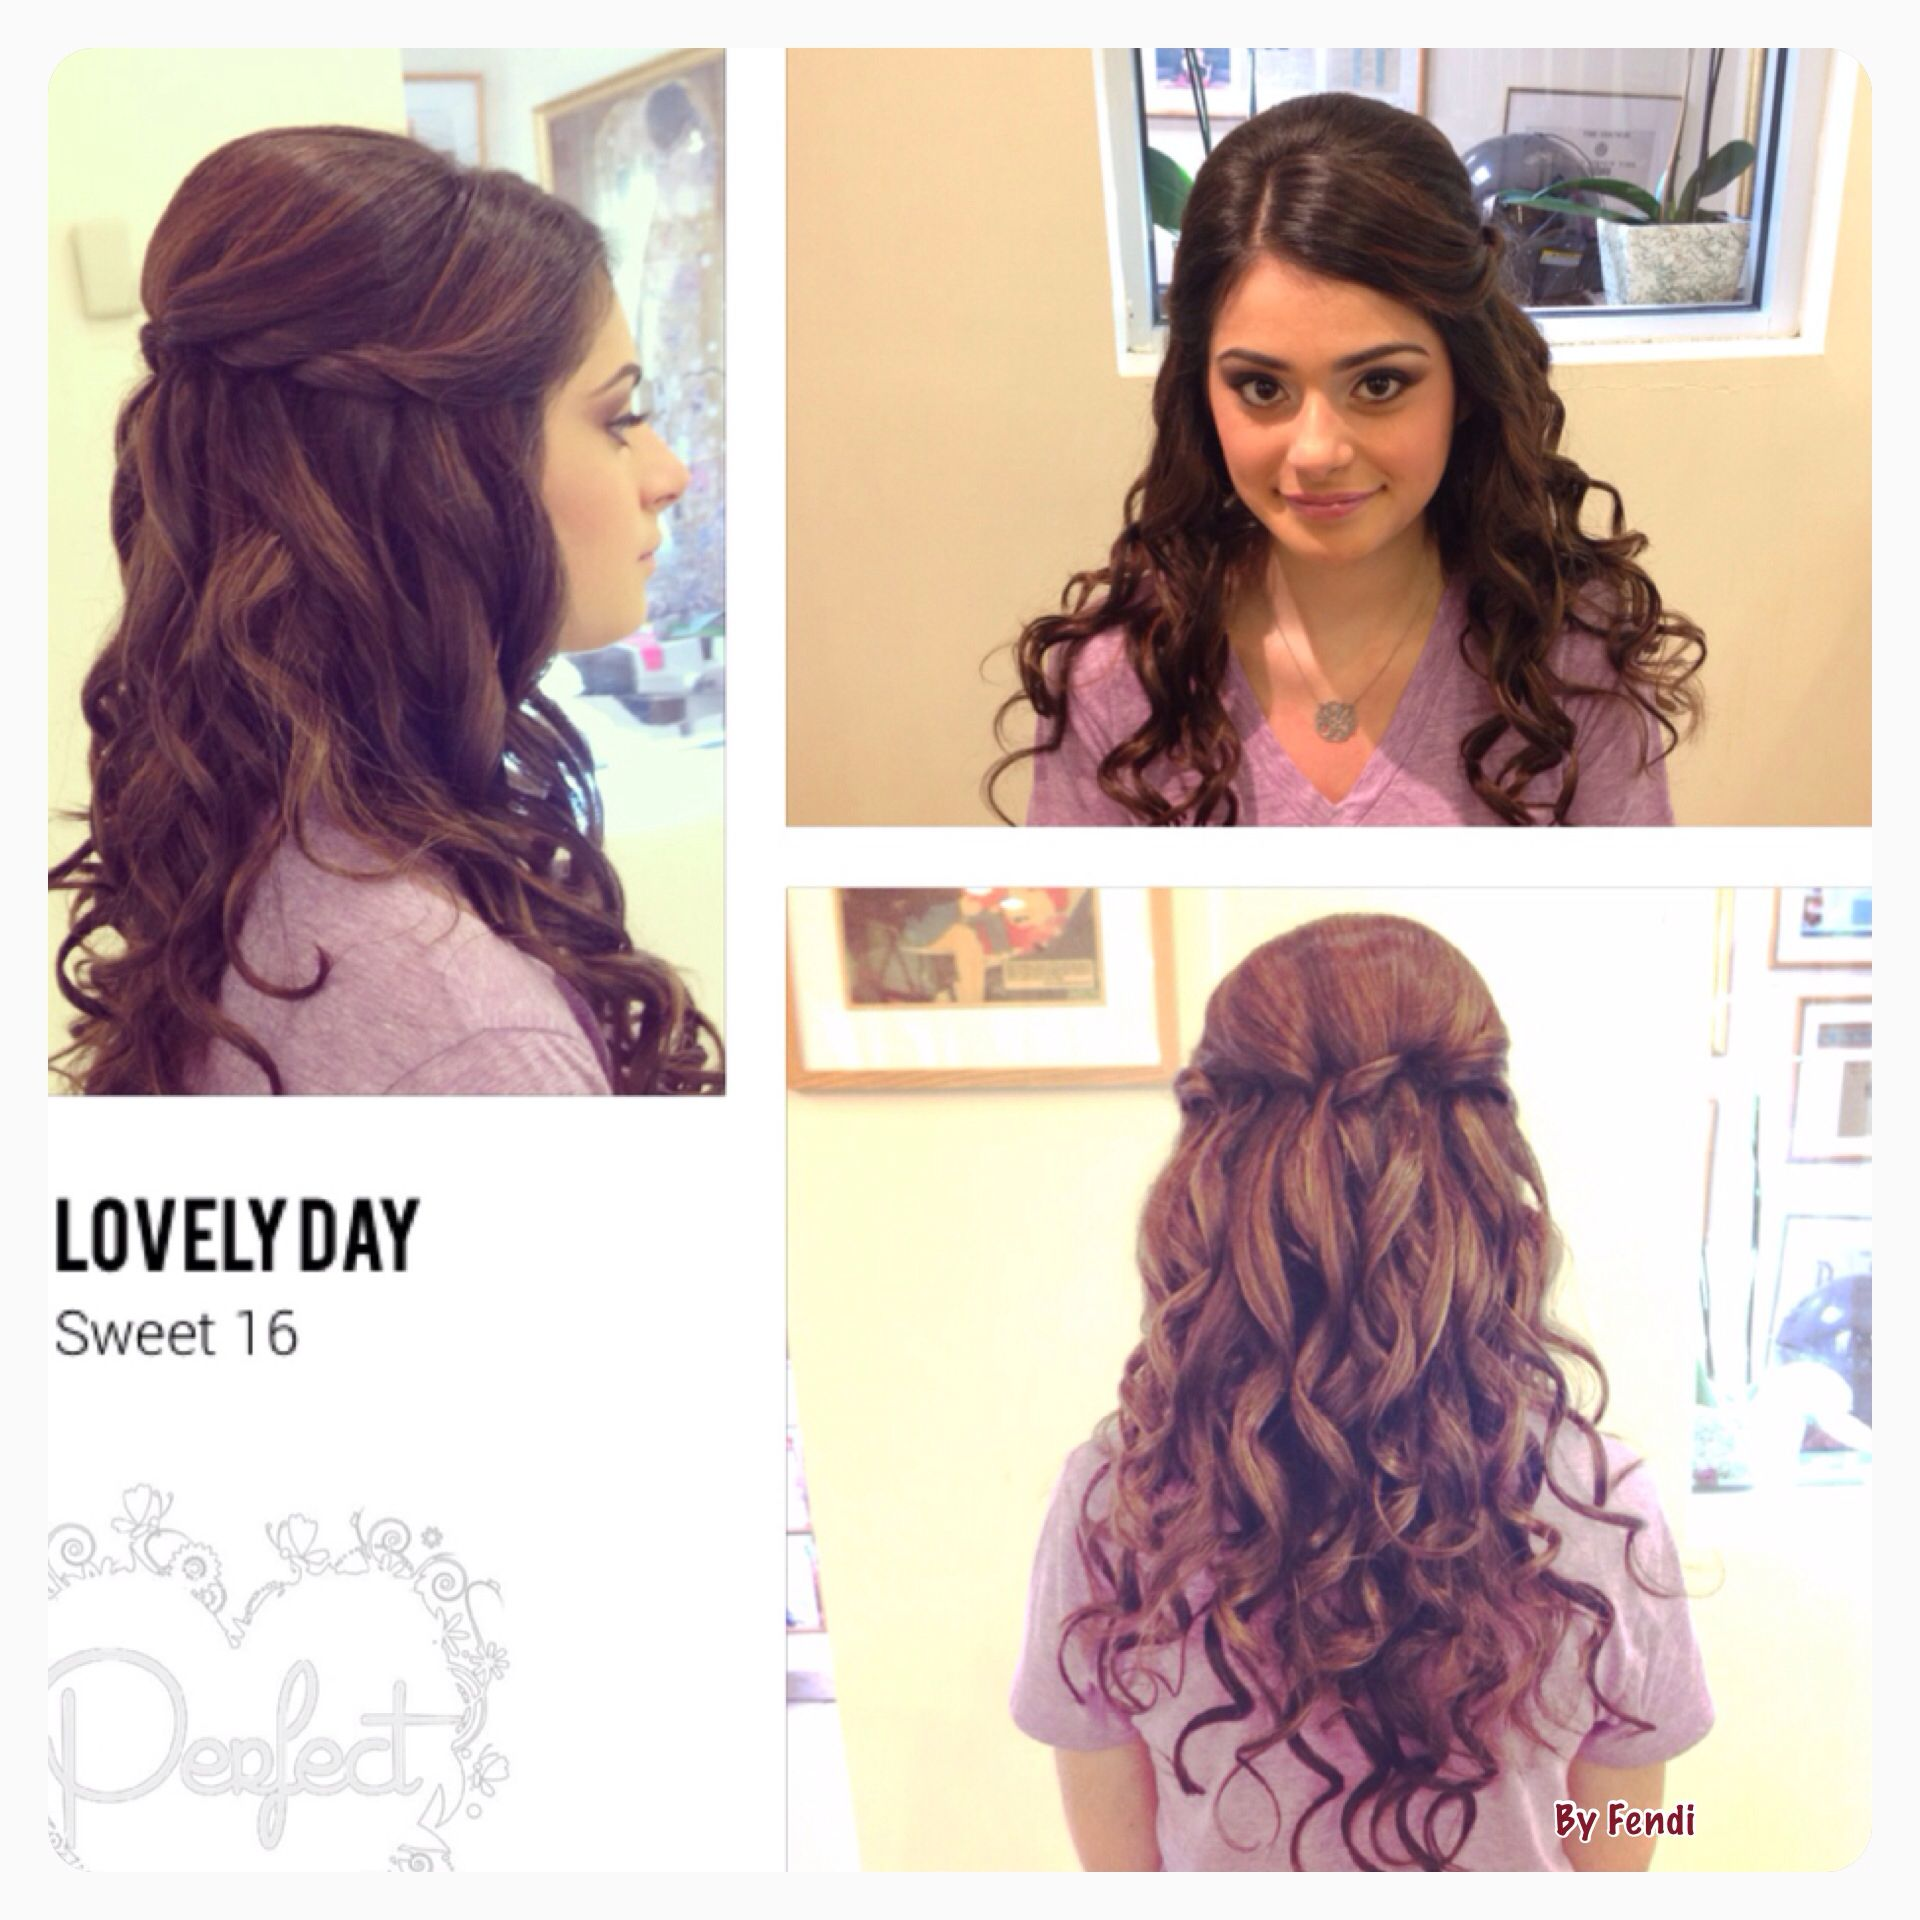 Sweet 16 hairstyle Sweet 16 ideas Pinterest